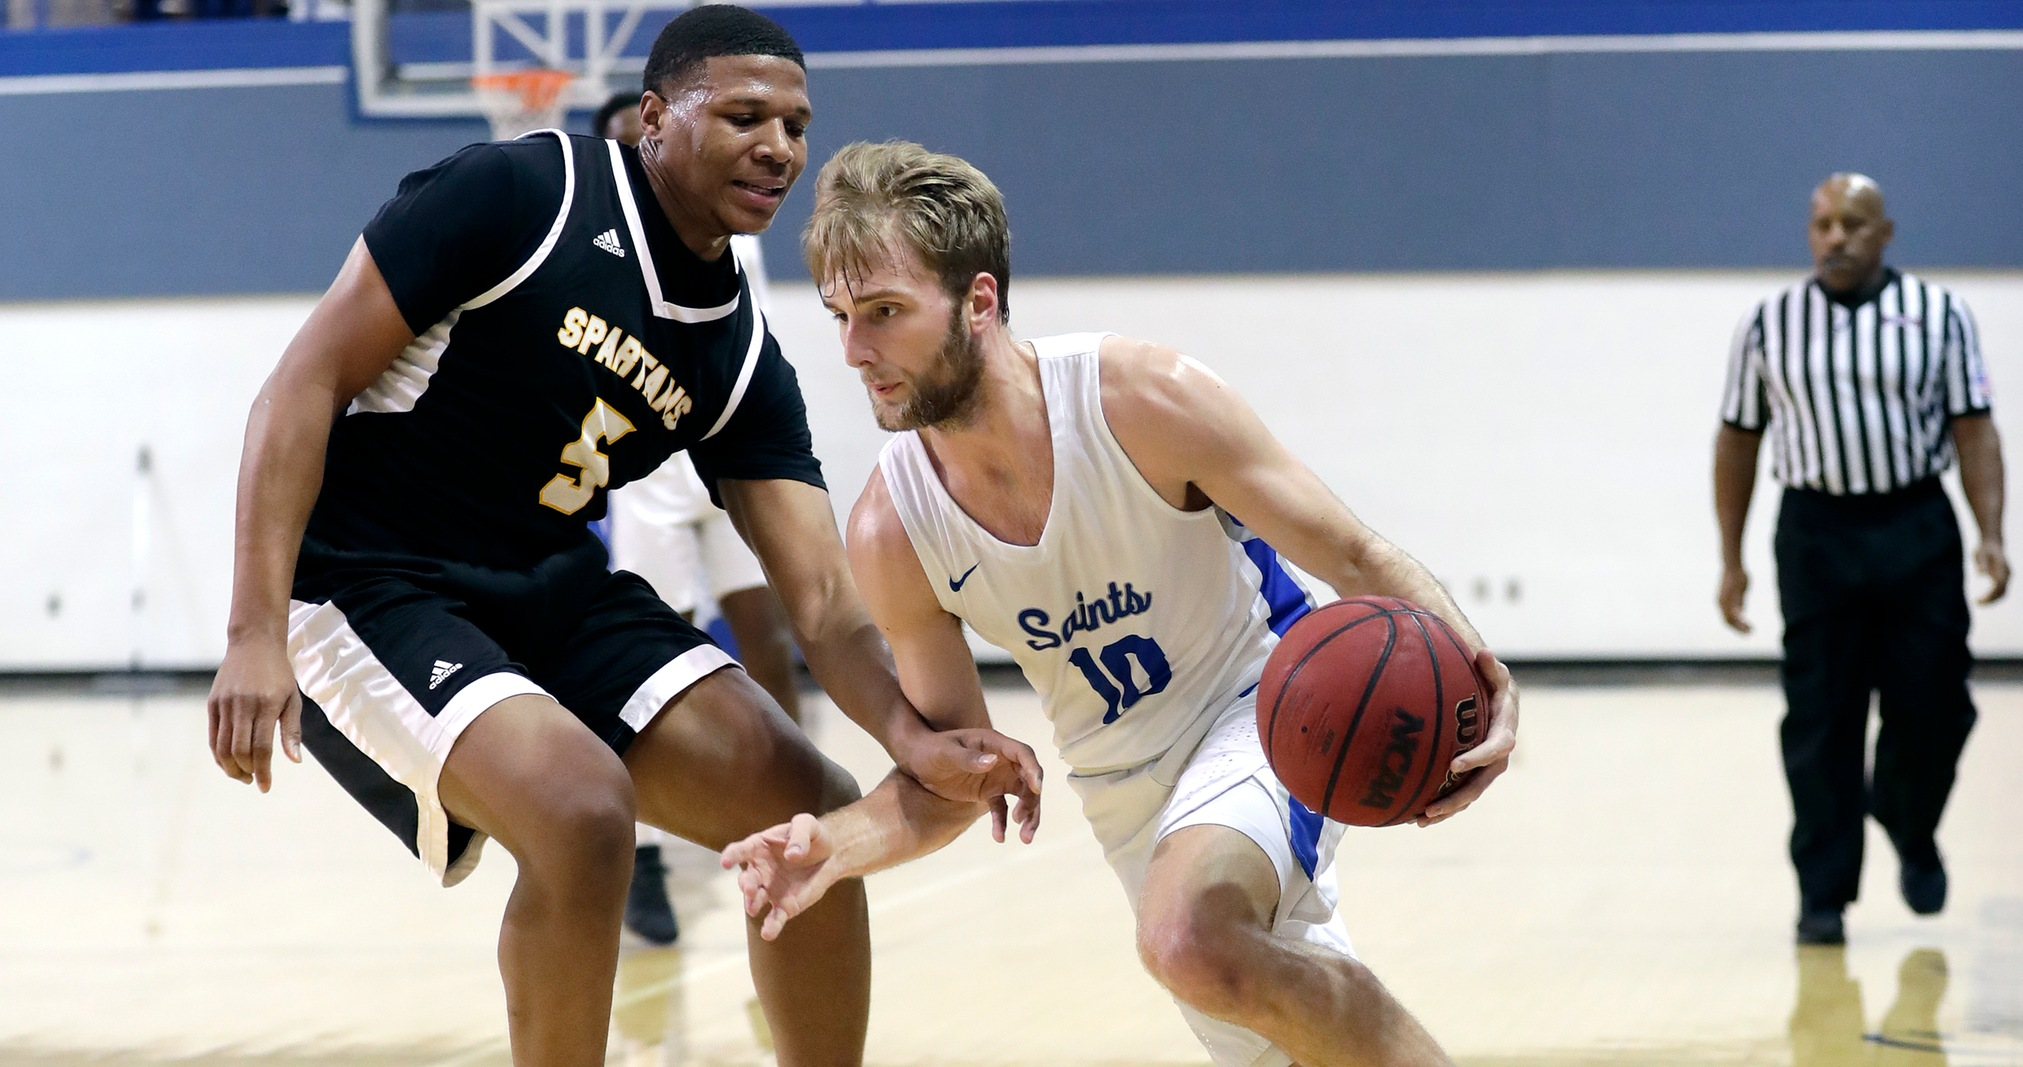 Callahan Leads Saints to an 84-58 Win Over Emory and Henry